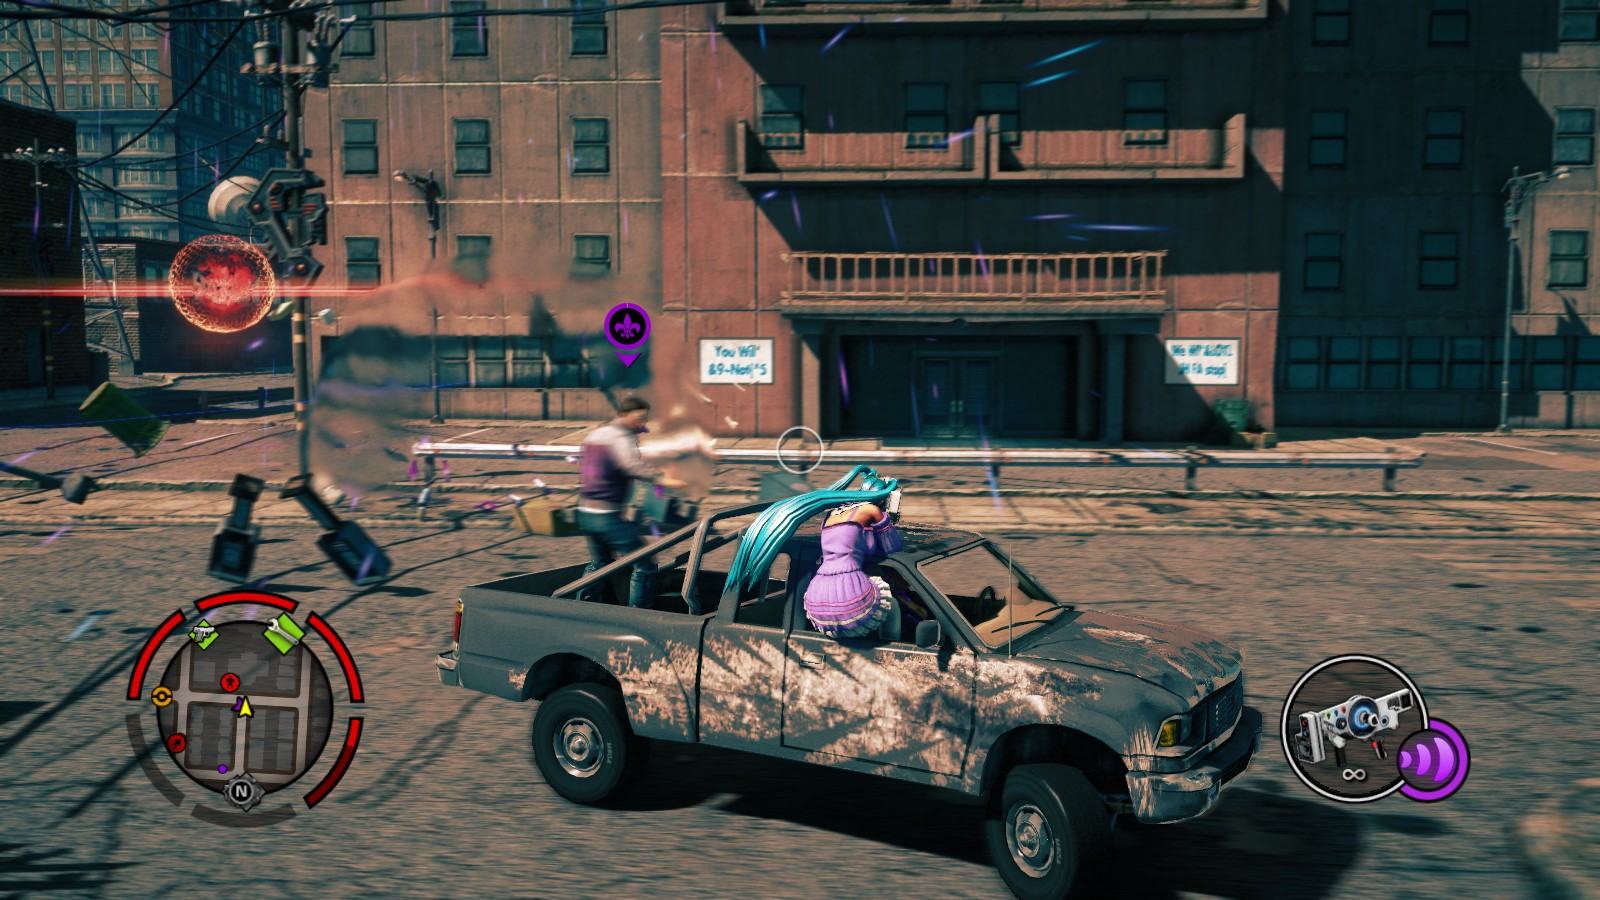 мод для saints row the third на жигули